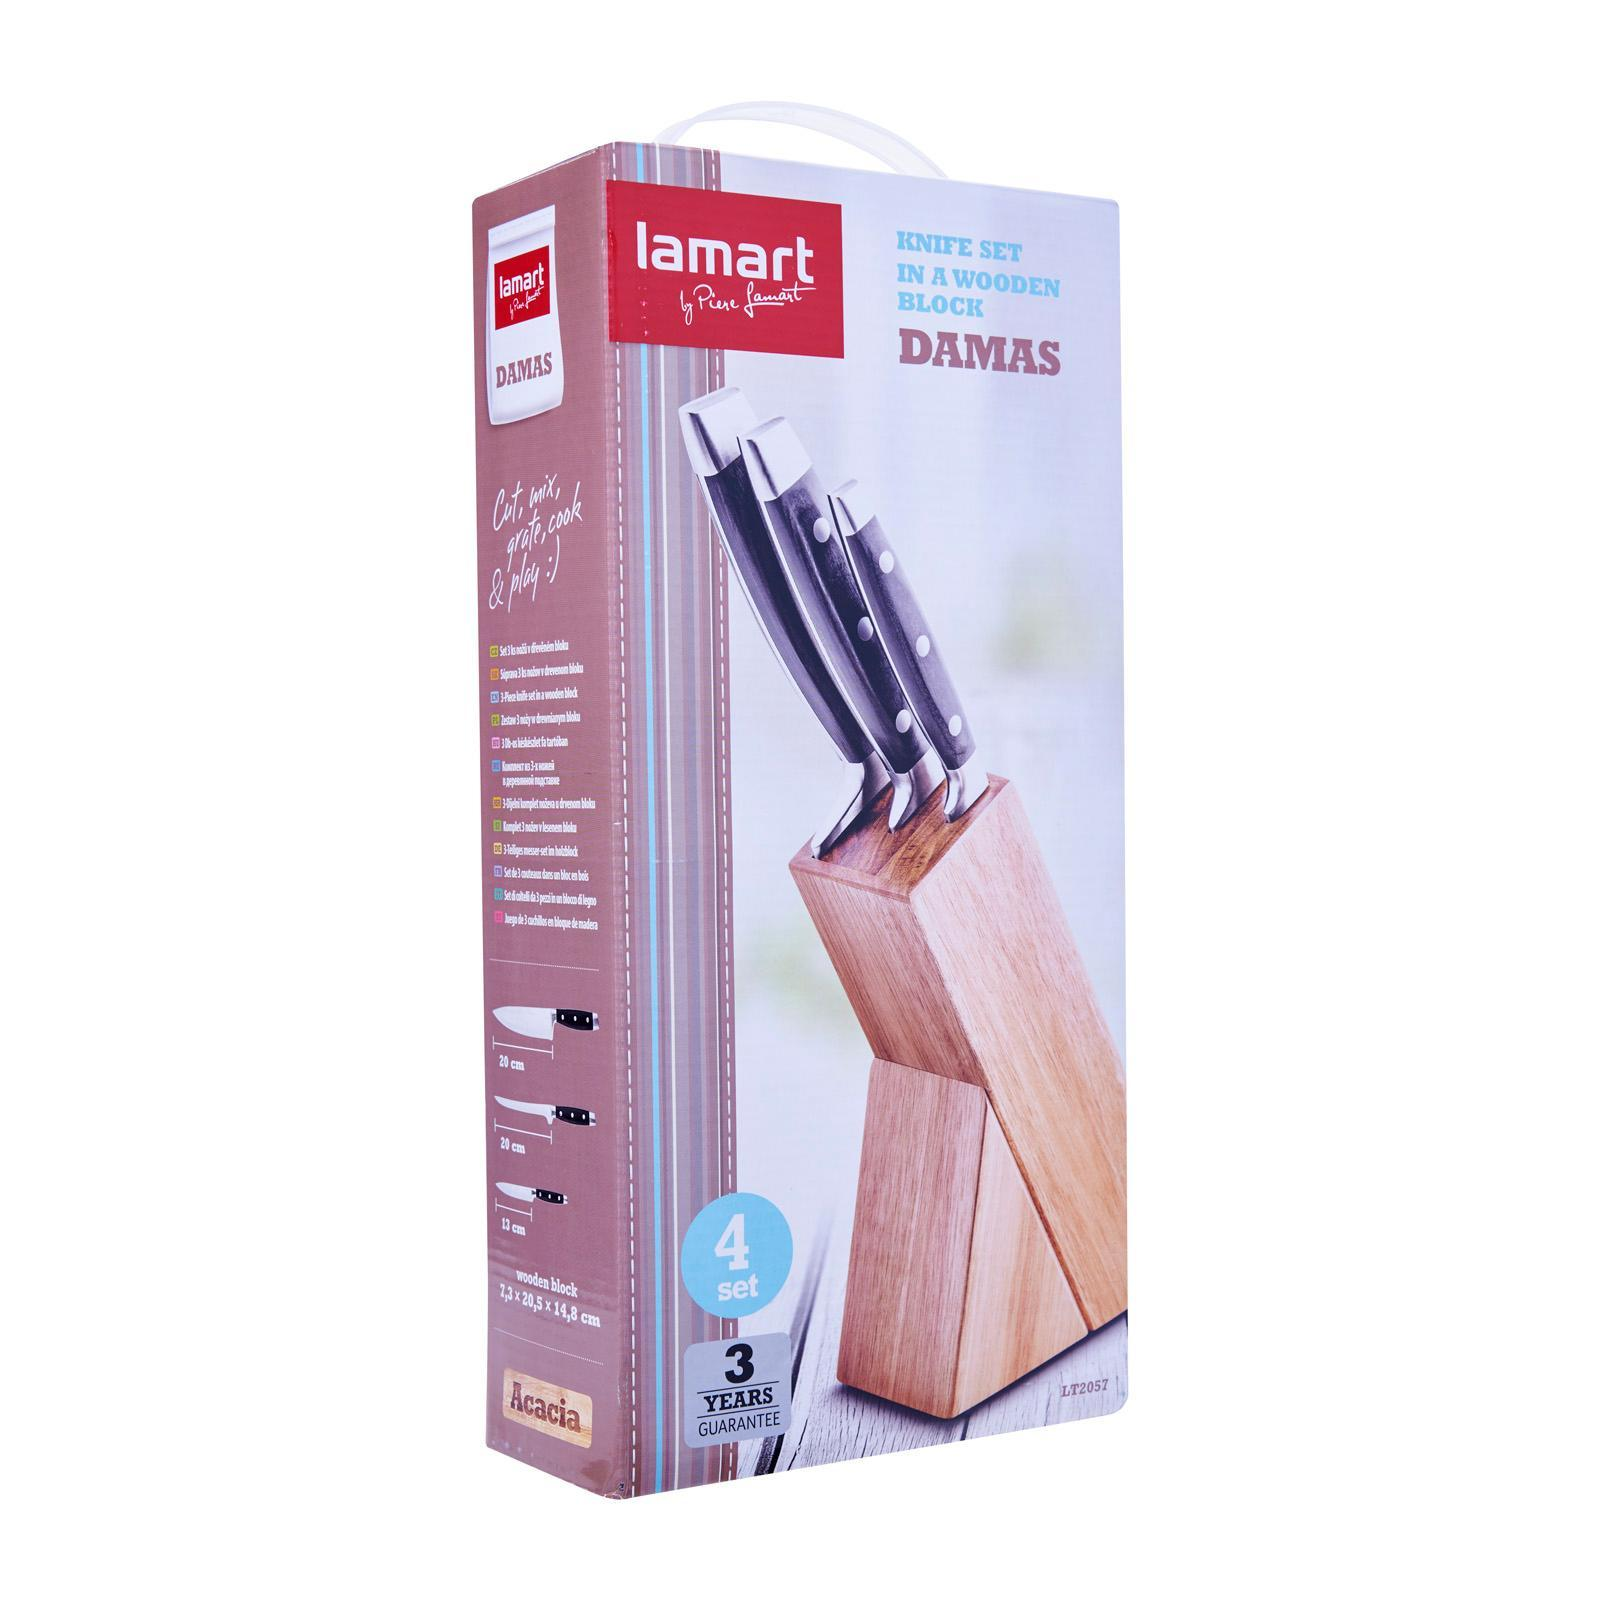 Lamart Stainless Steel Knives And Bamboo Wood Block Set 4 Pcs